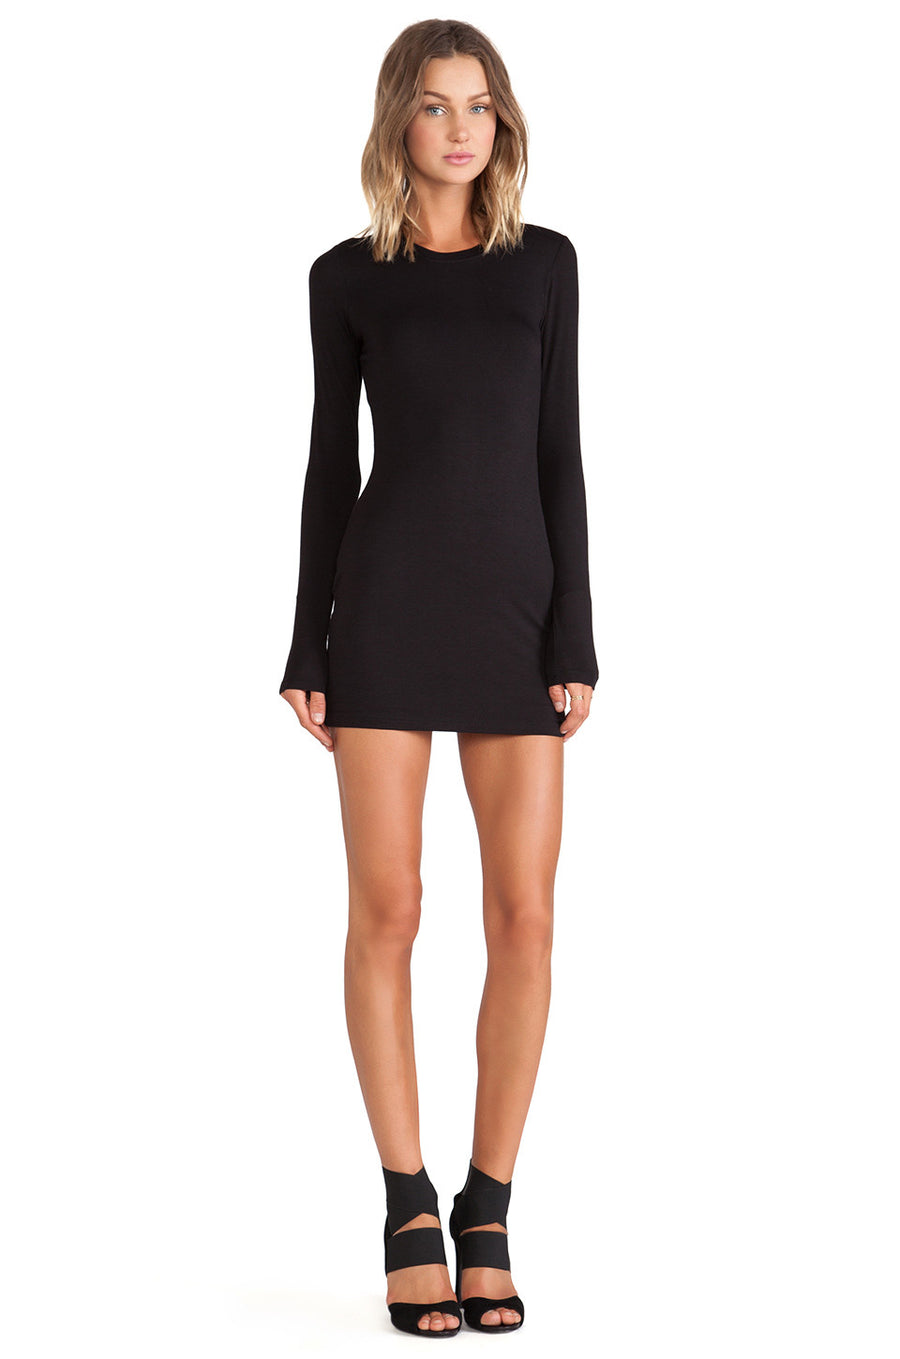 Sleek Sleeve Mini Dress